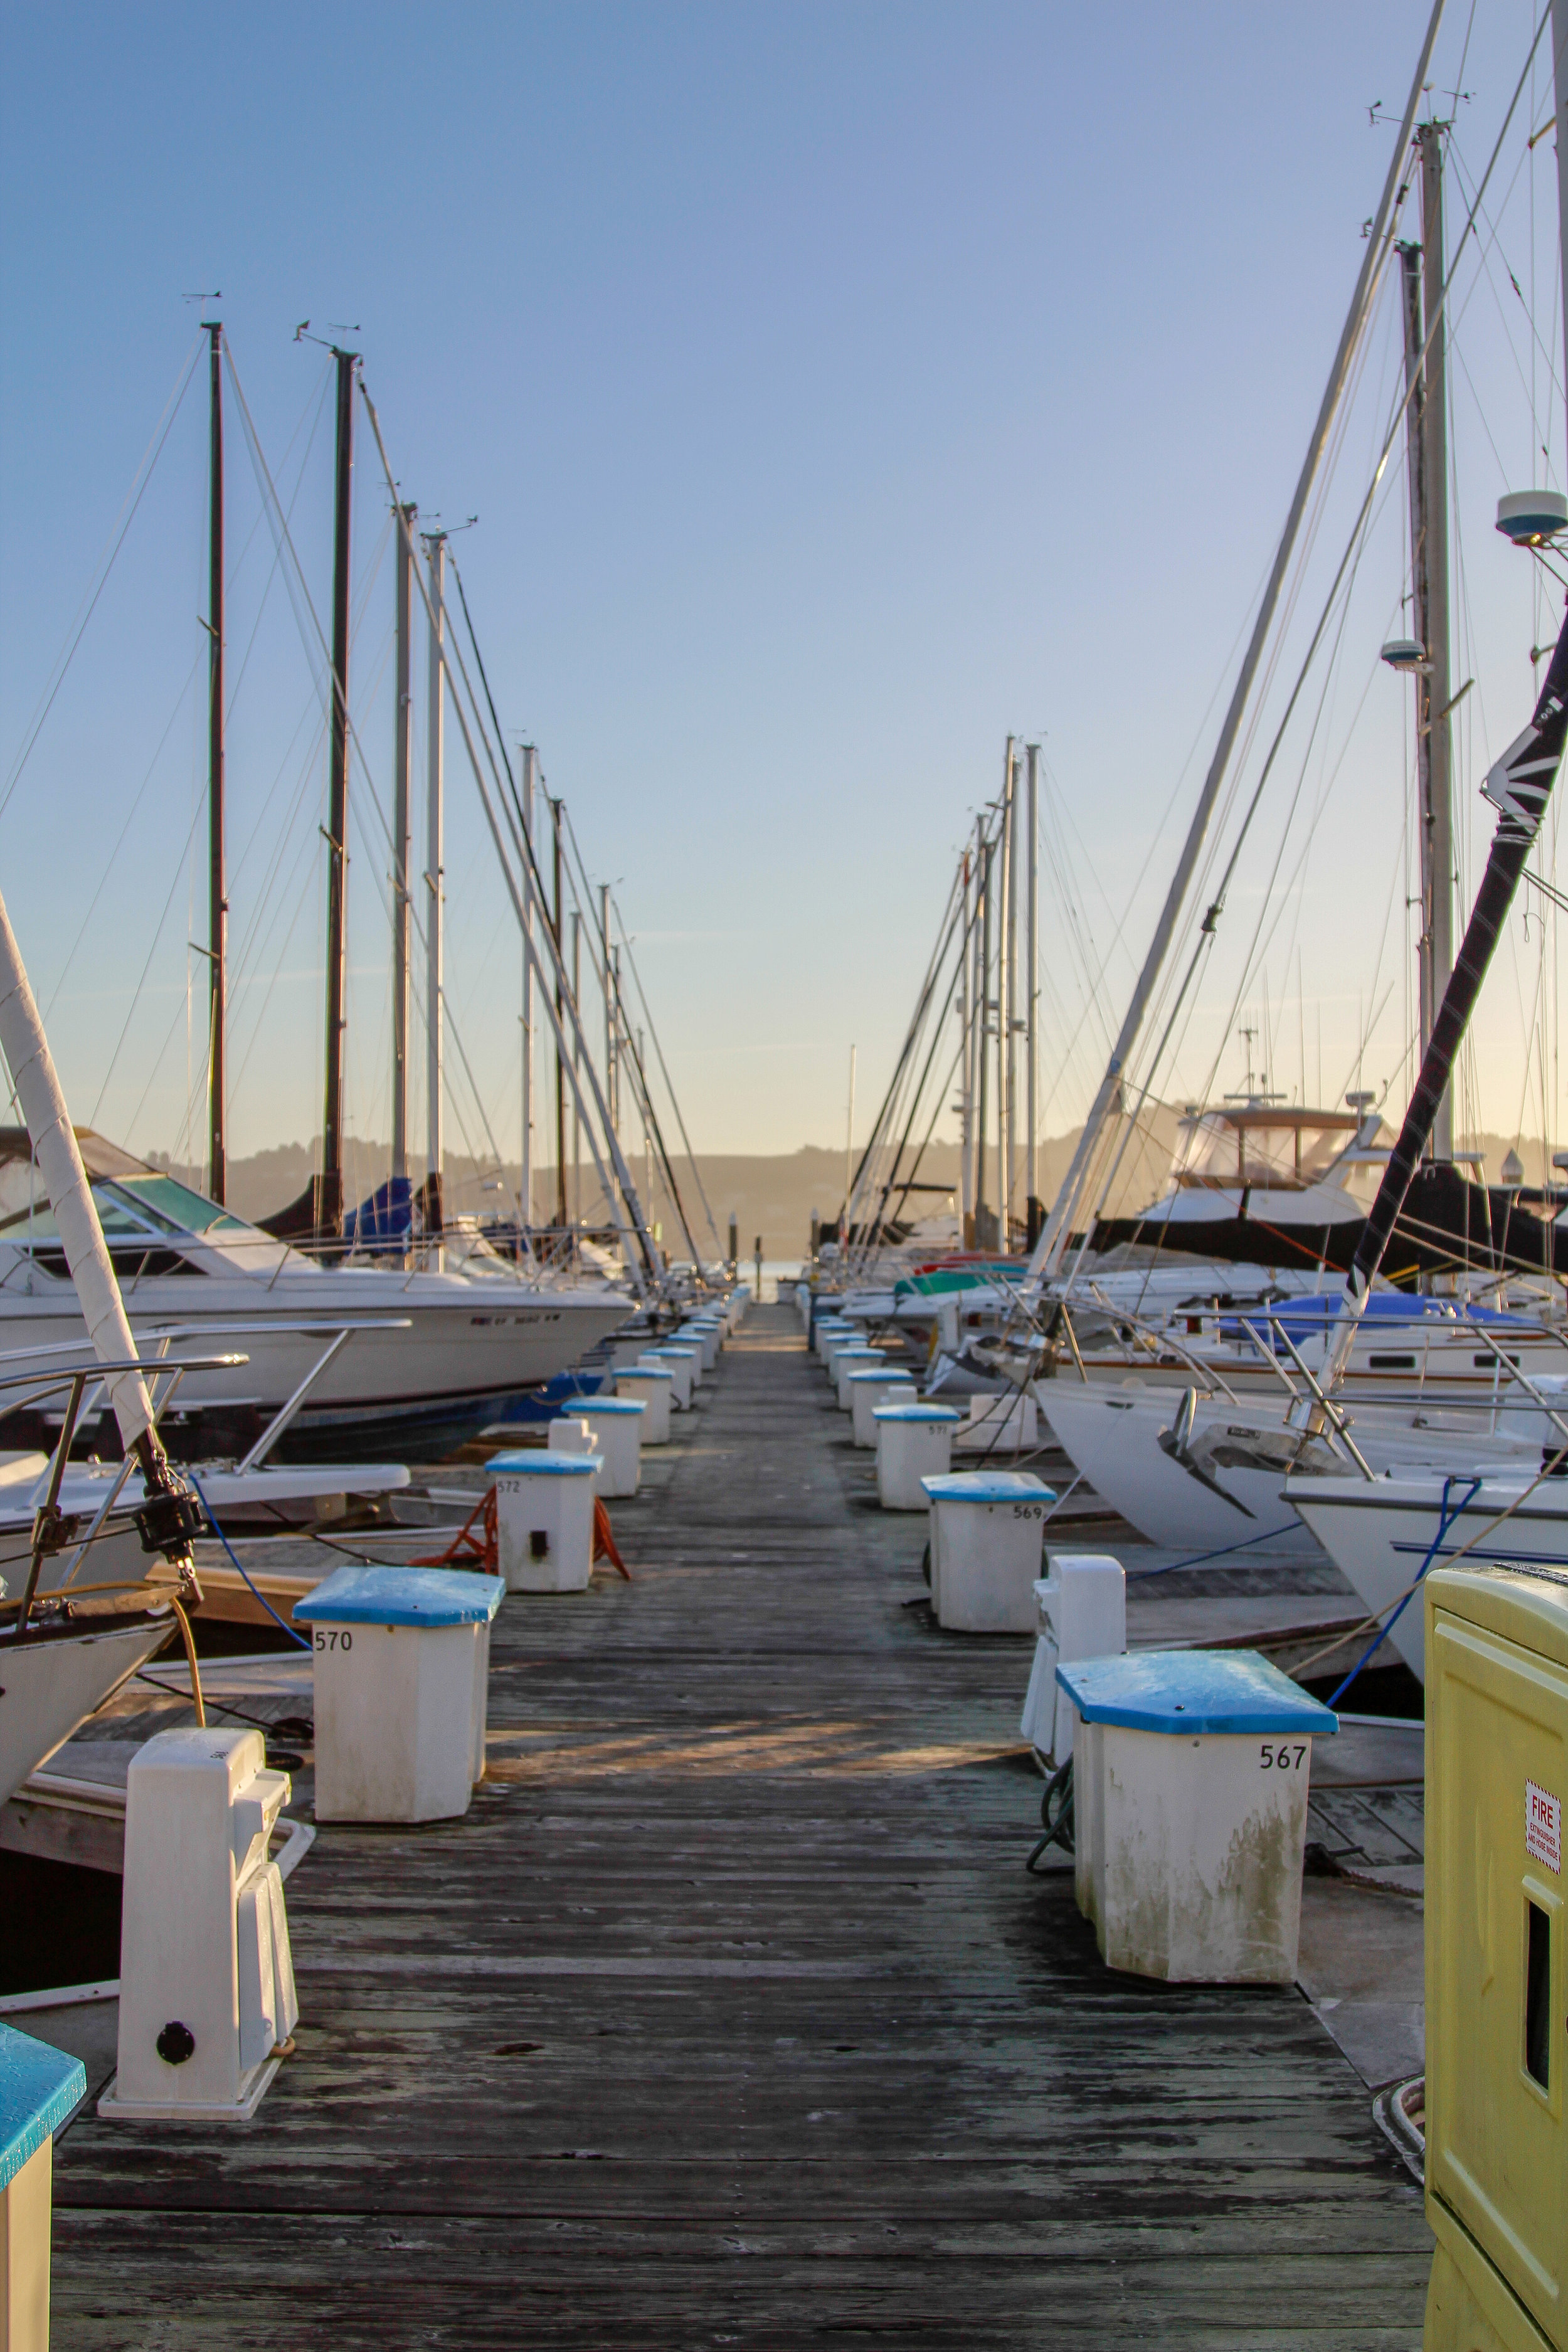 blog about living on our boat in sausalito